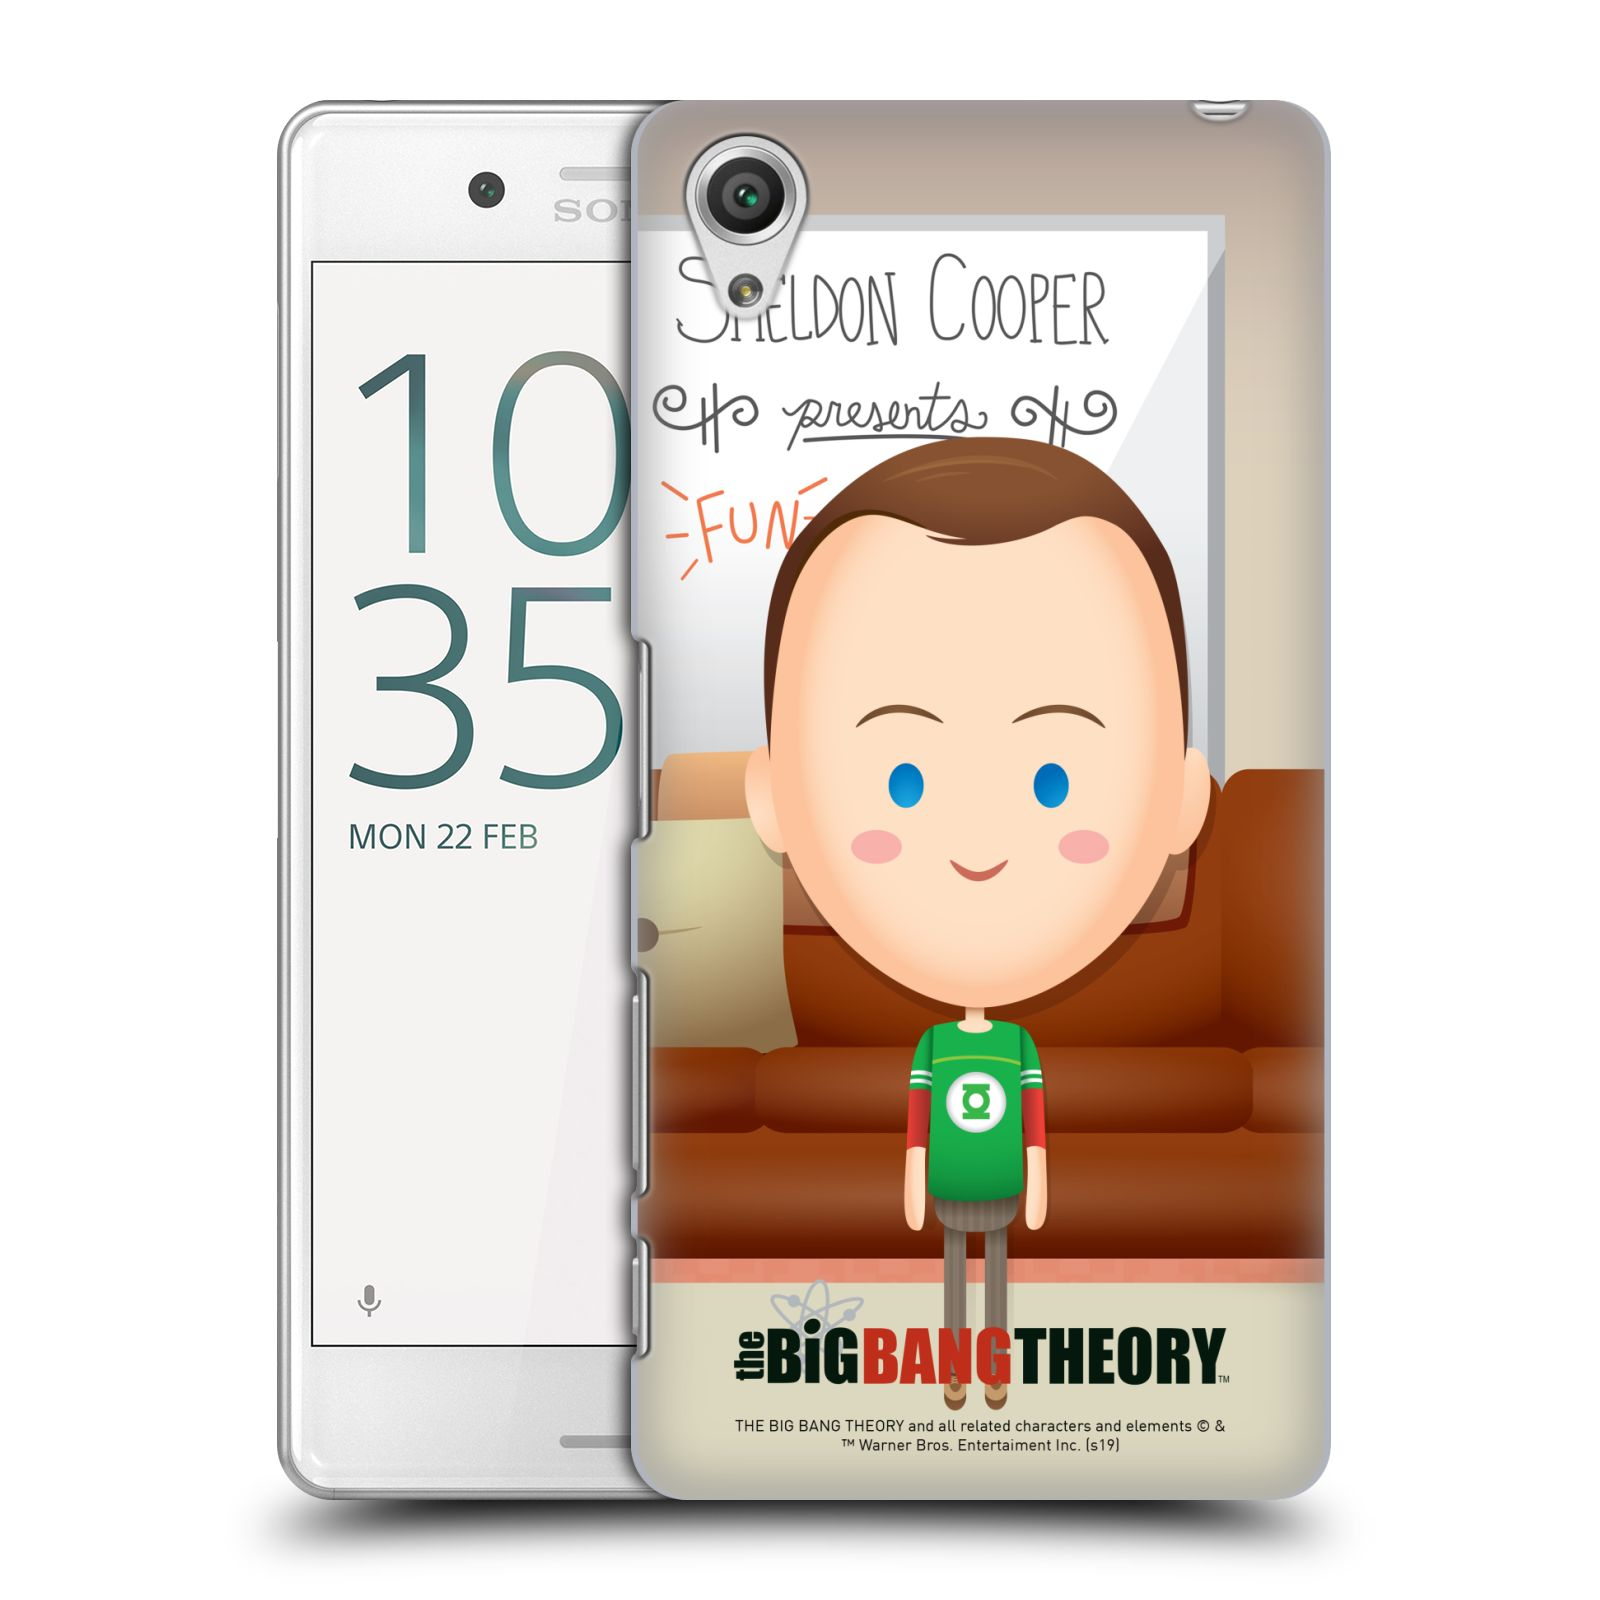 Pouzdro na mobil Sony Xperia X PERFORMANCE - HEAD CASE - Big Bang Theory - kreslený Sheldon